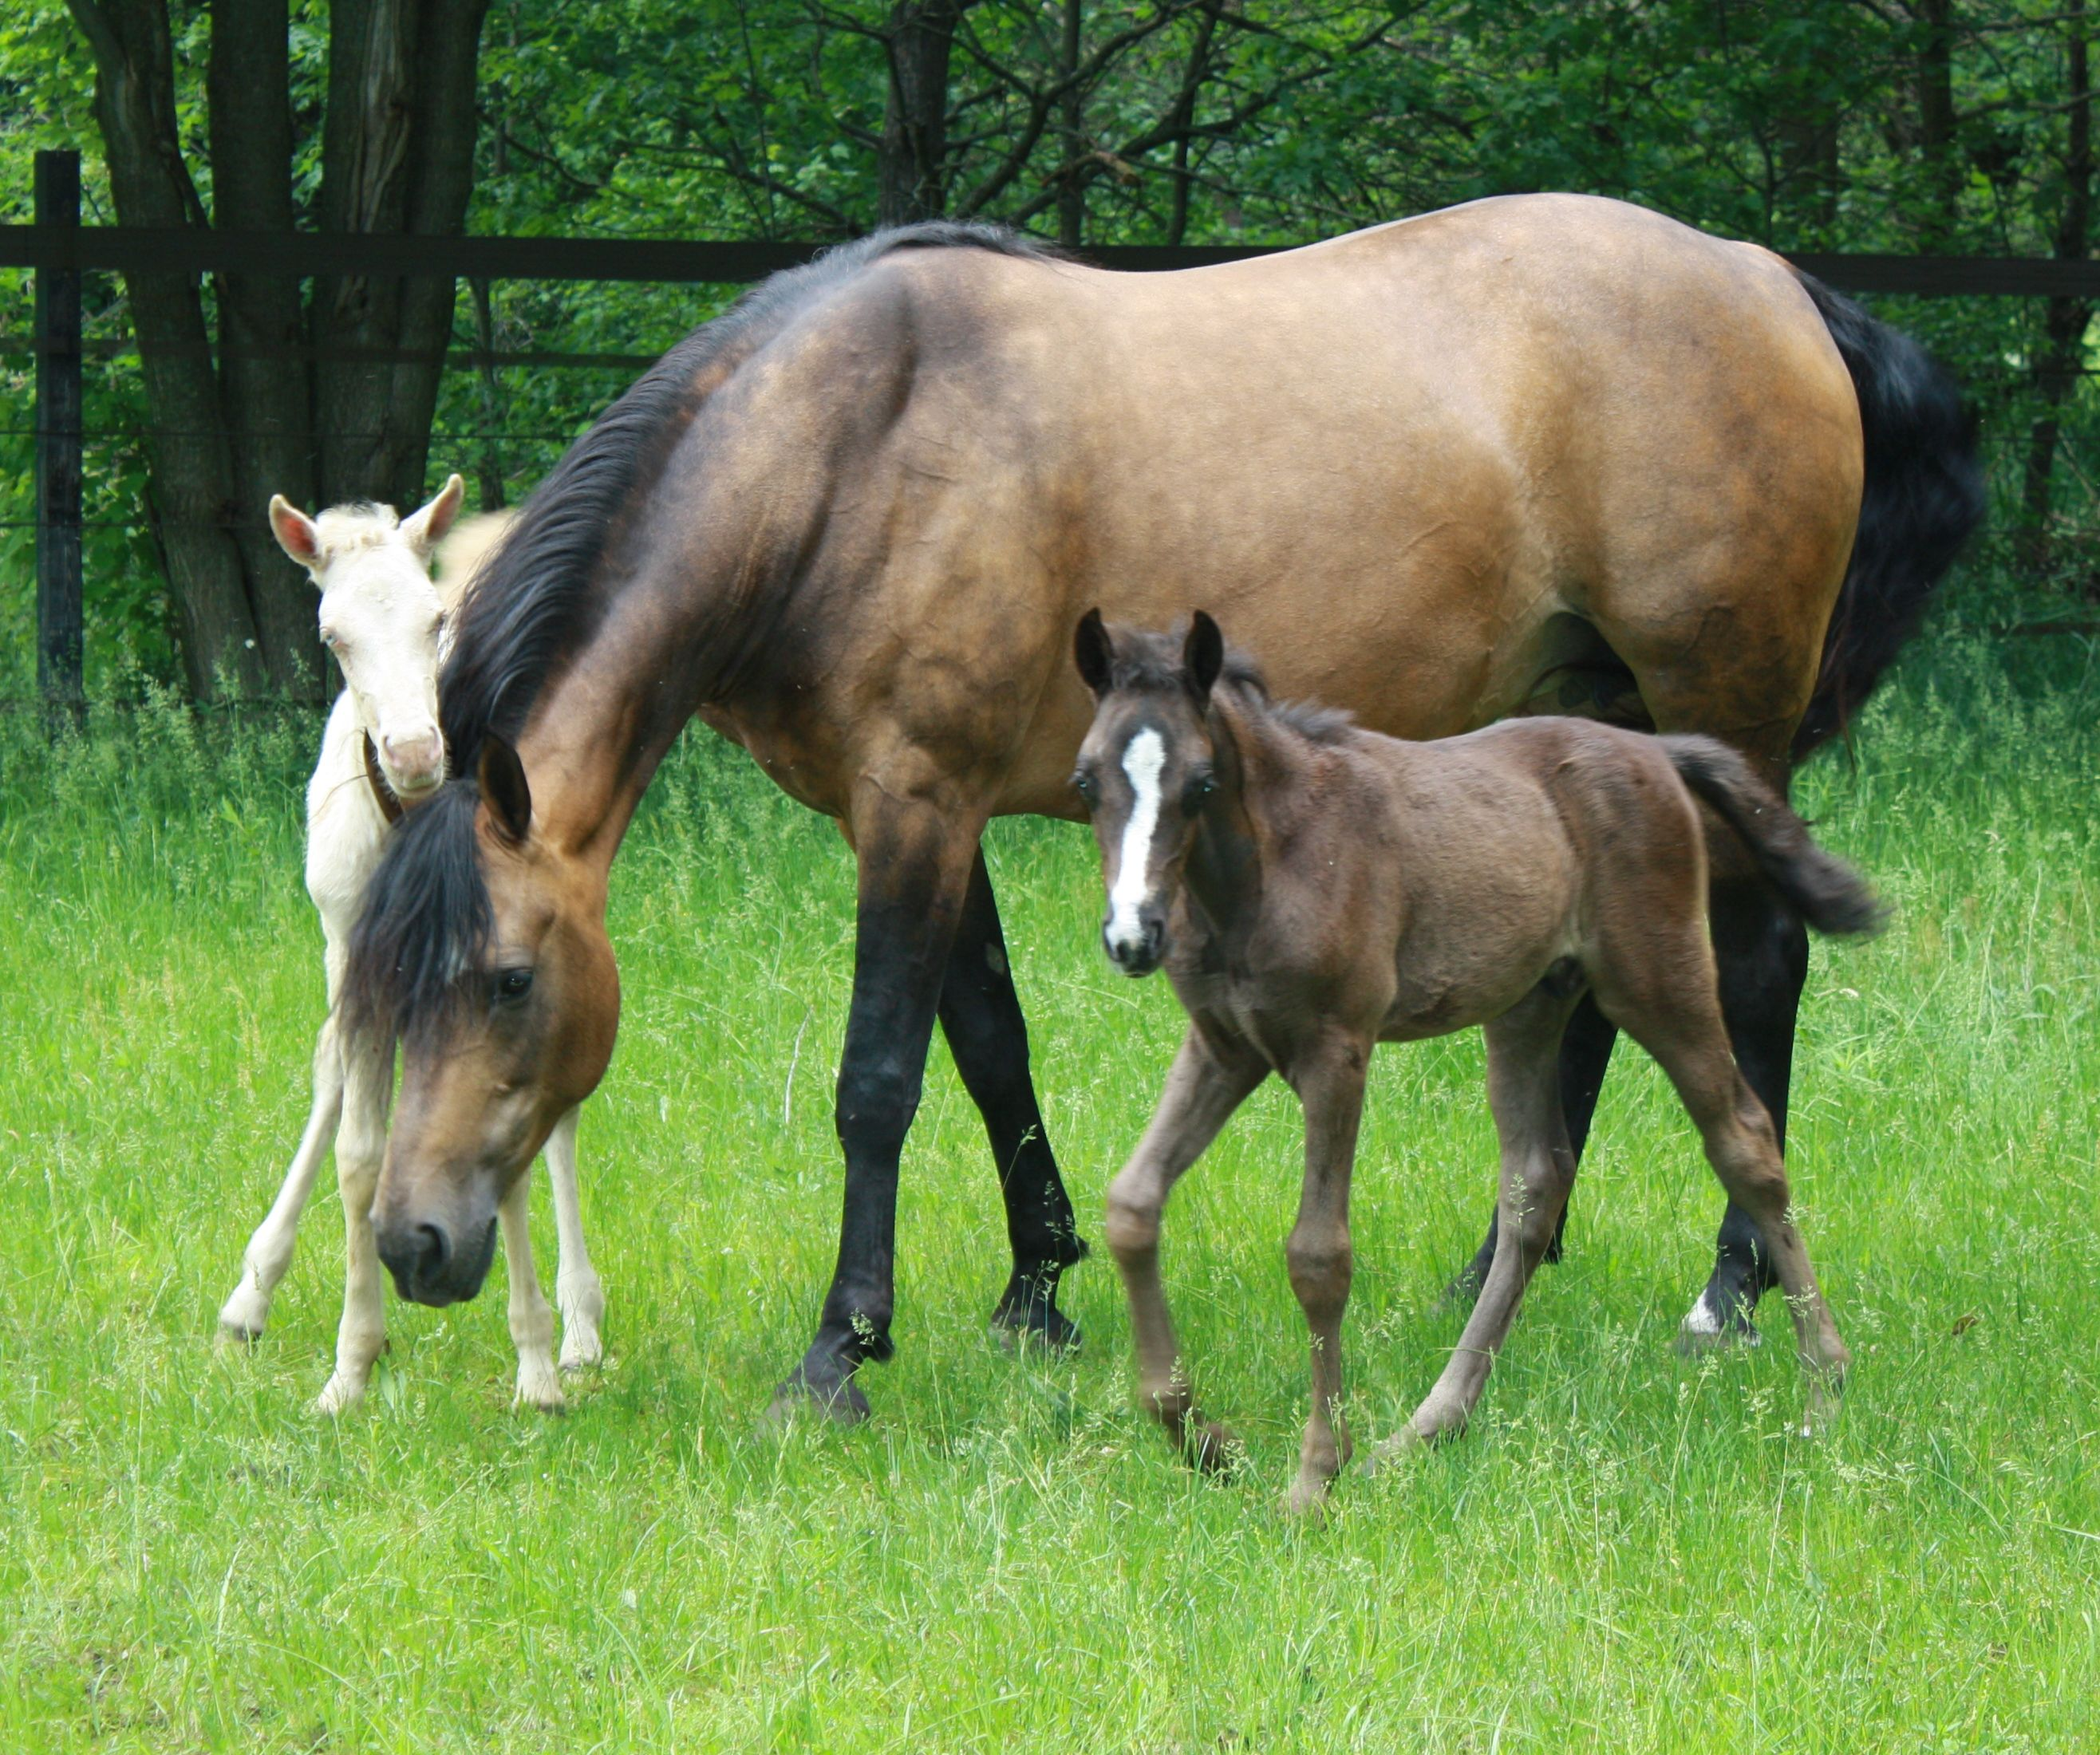 Horses giving birth to triplets